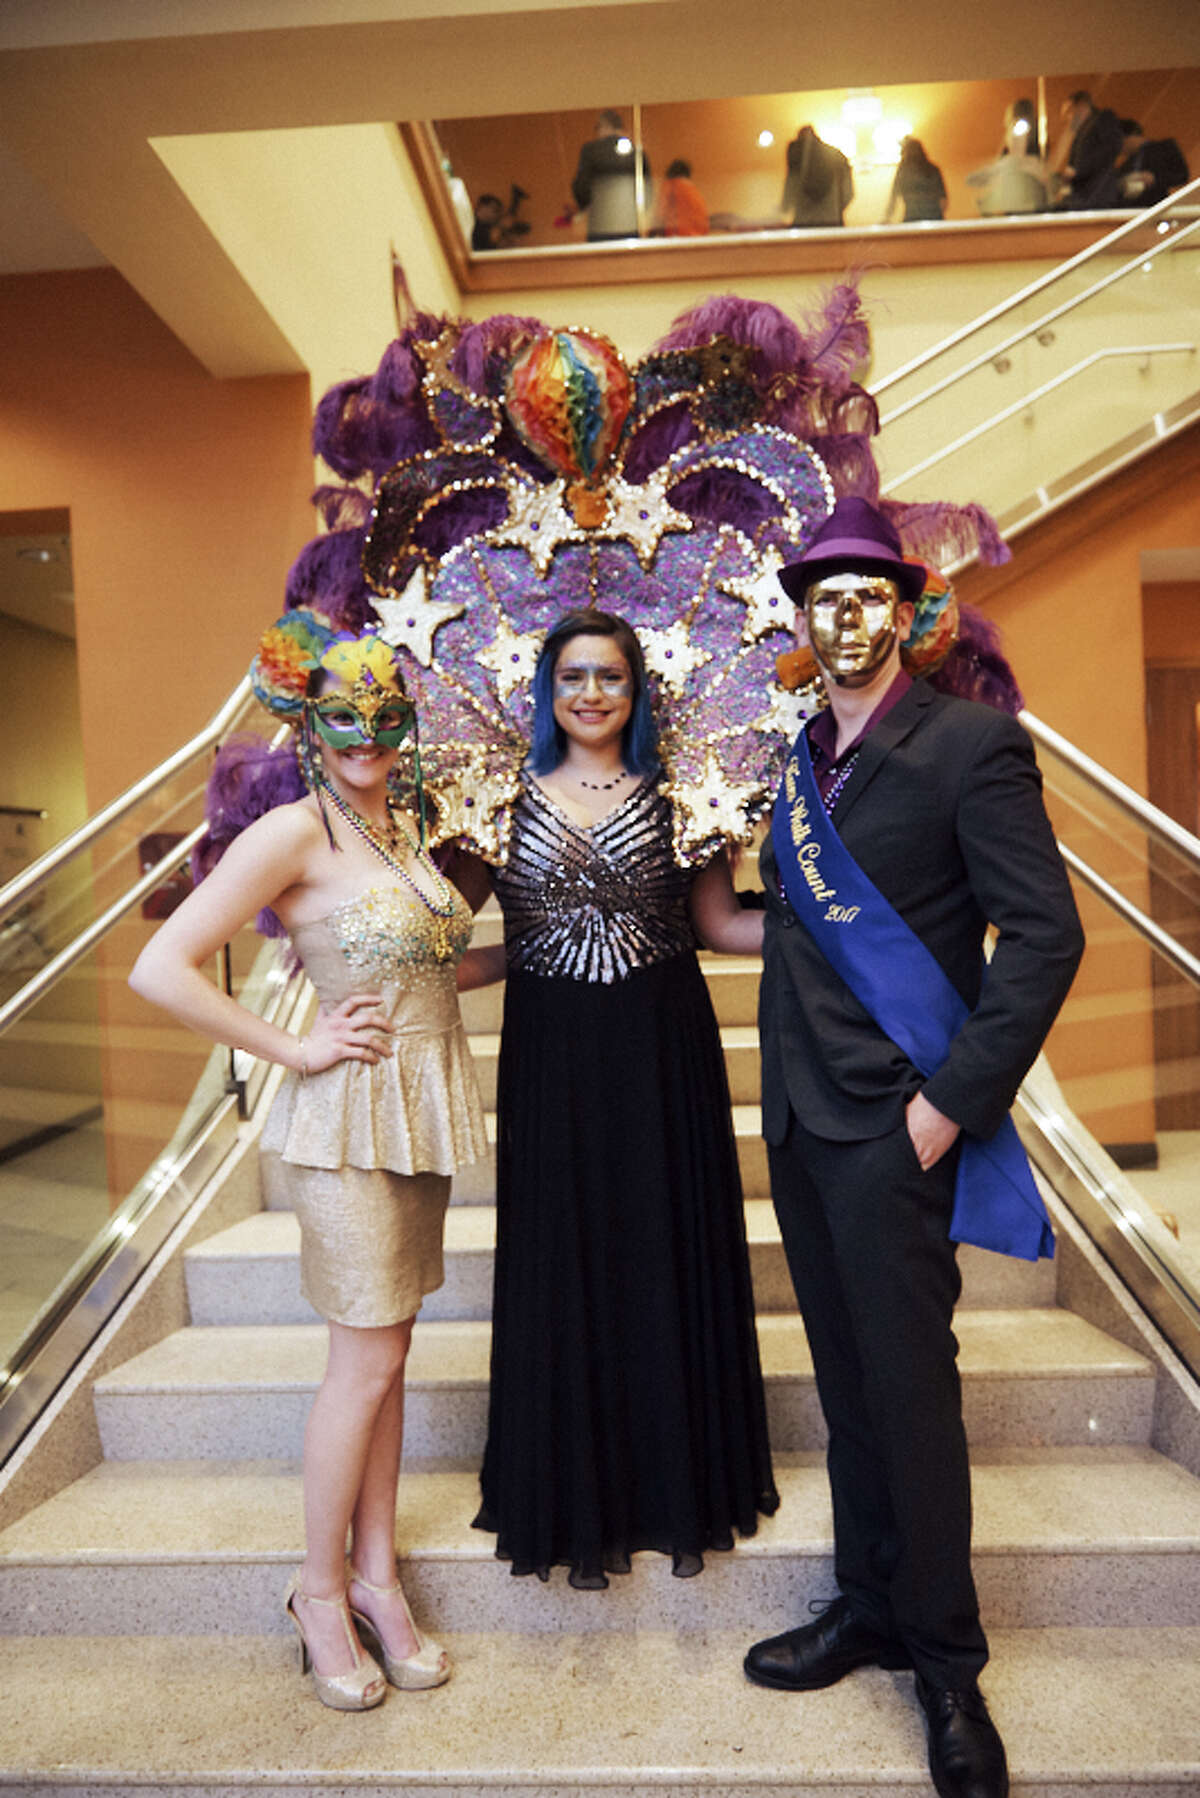 March 1: Royal Masquerade Gala  Hyatt Regency, 7 to 10:30 p.m.